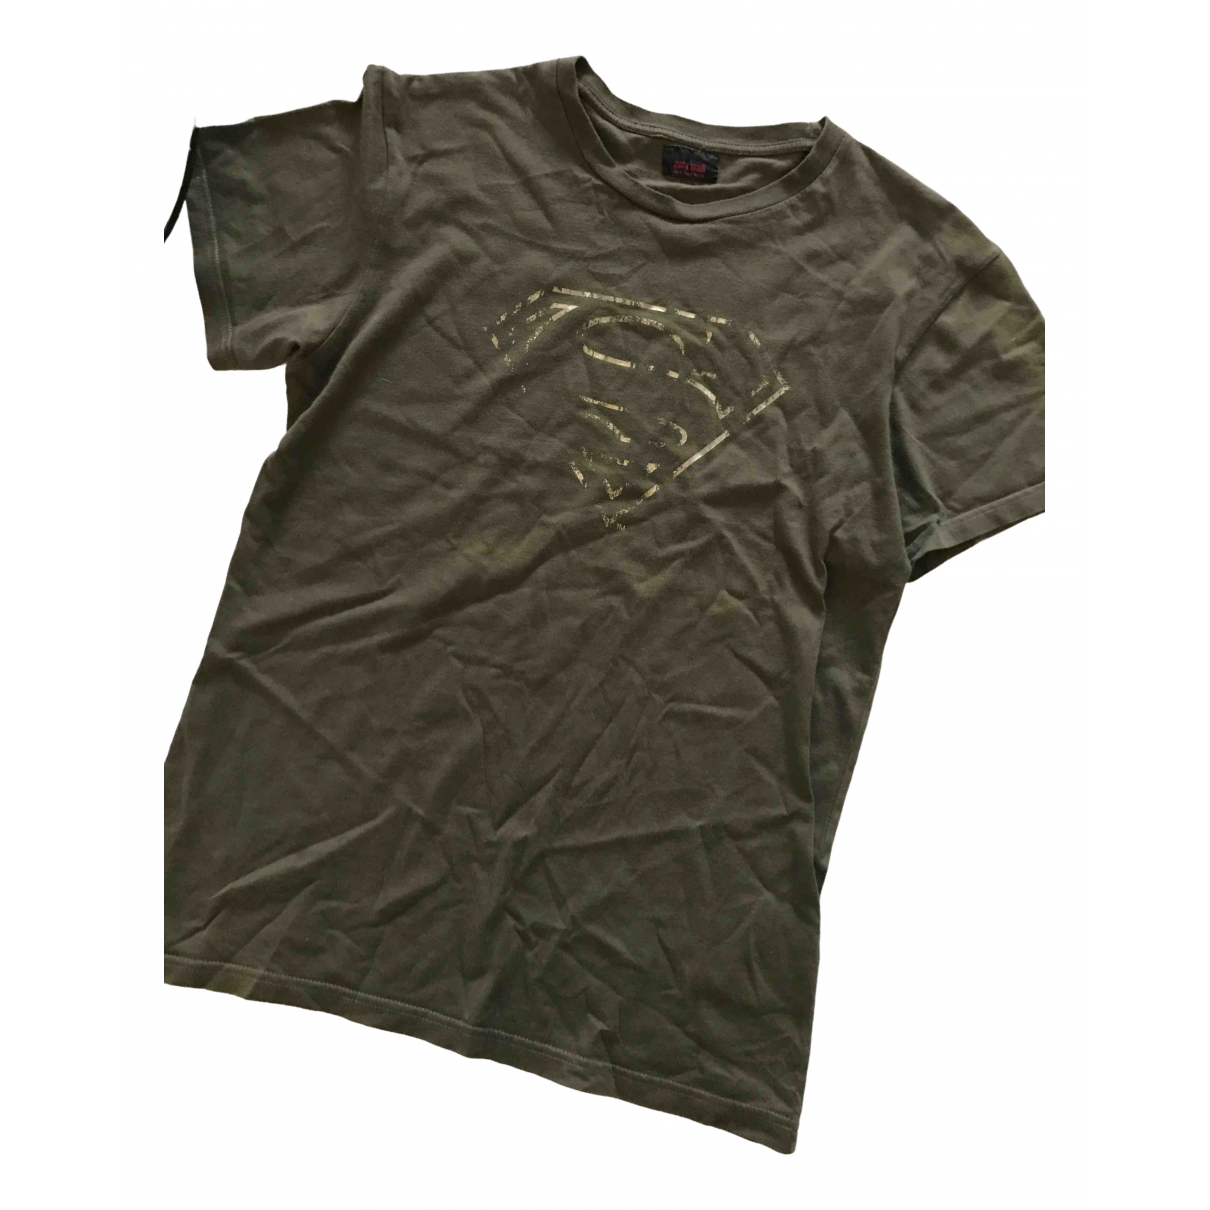 Zara \N Khaki Cotton T-shirts for Men M International